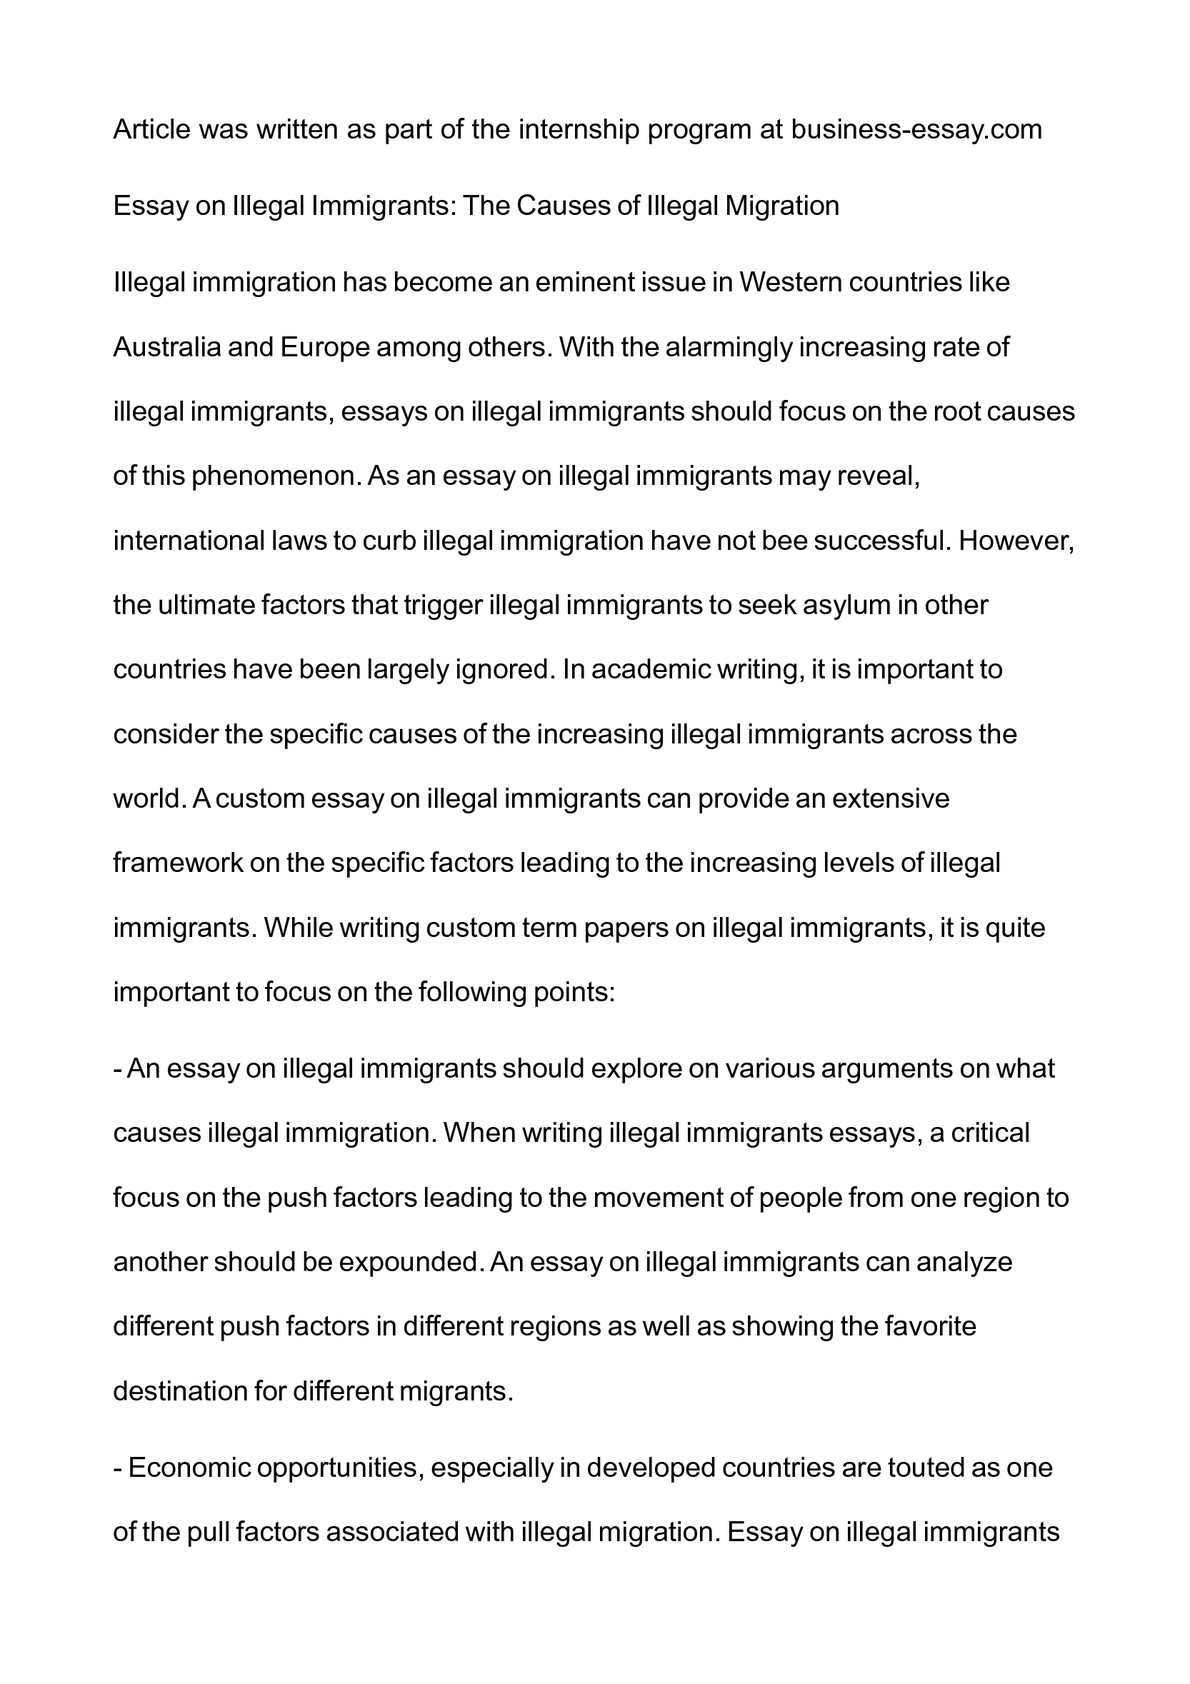 persuasive essay on immigration persuasive essay on immigration  illegal immigration essays calamatildecopyo essay on illegal immigrants the causes of illegal migration